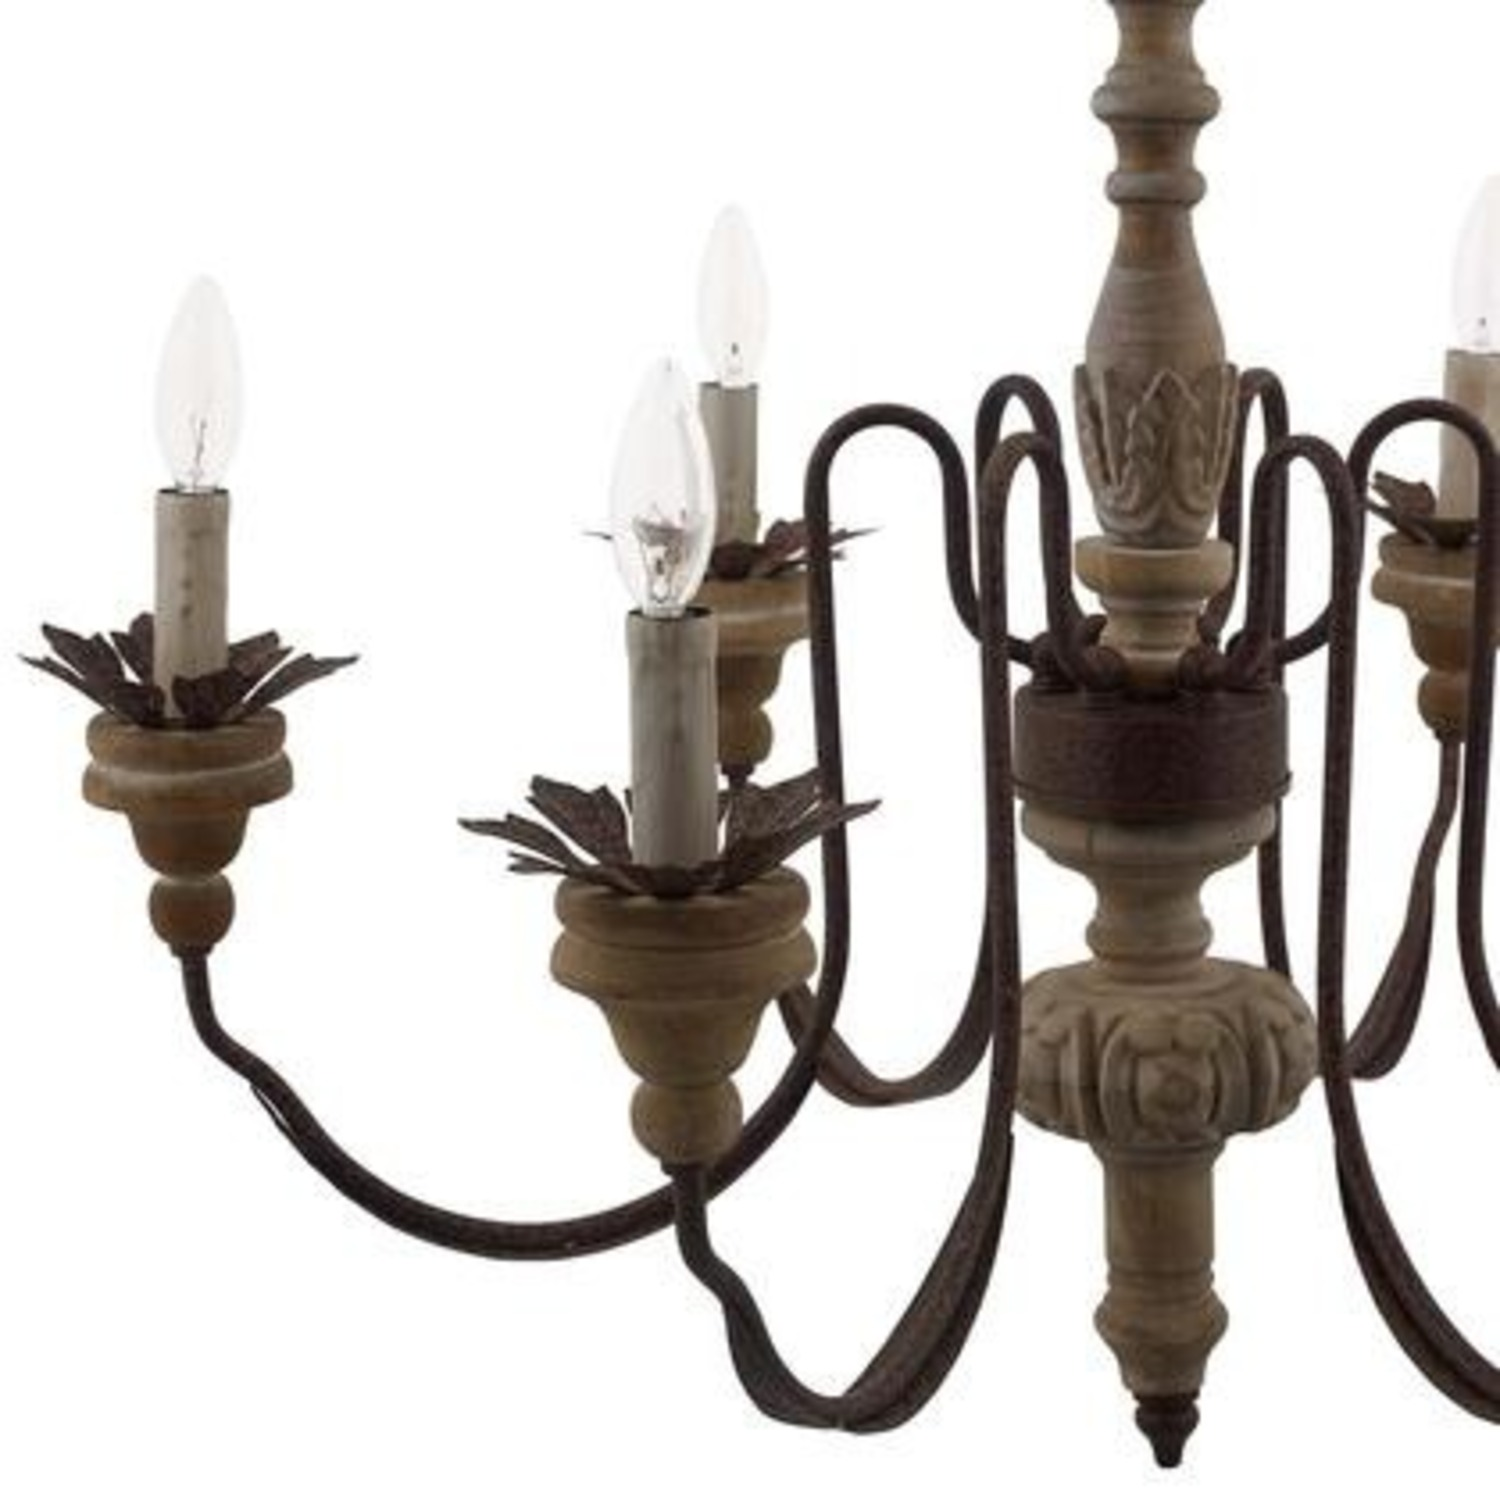 Vintage French Chandelier In Antique Metal Arms - image-2